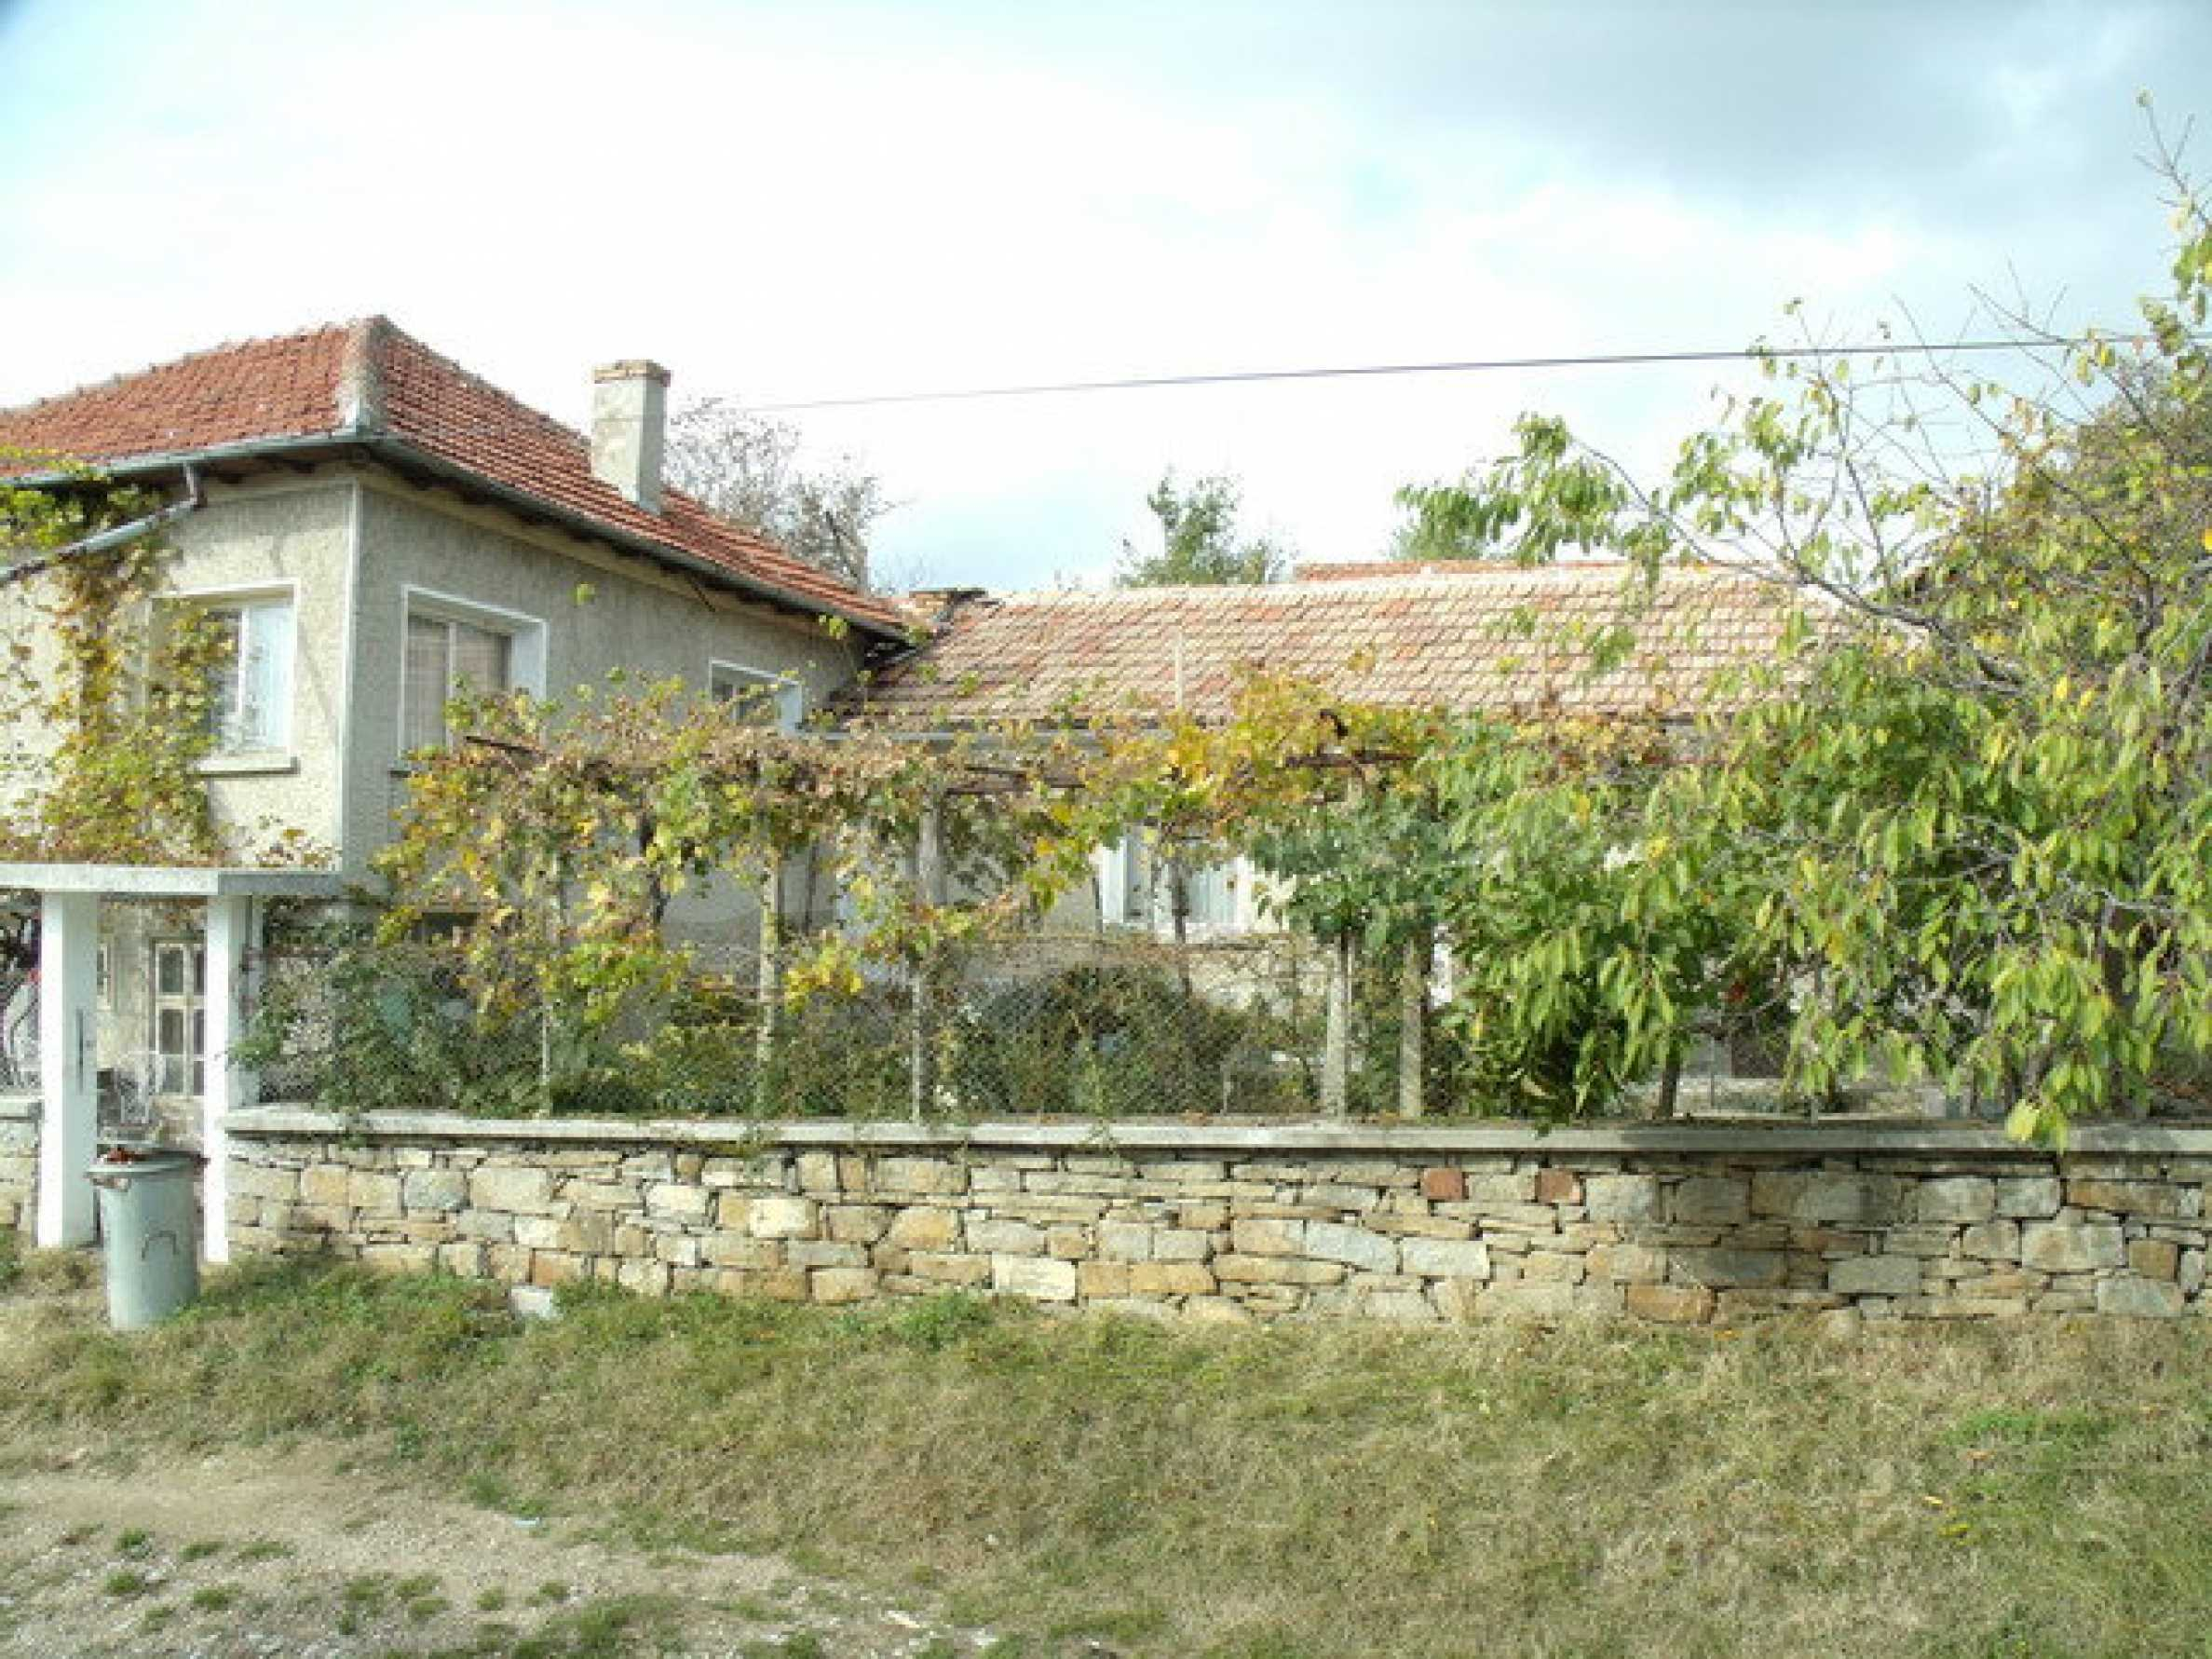 House in a small town, 15 km. from the old capital of Veliko Tarnovo 2